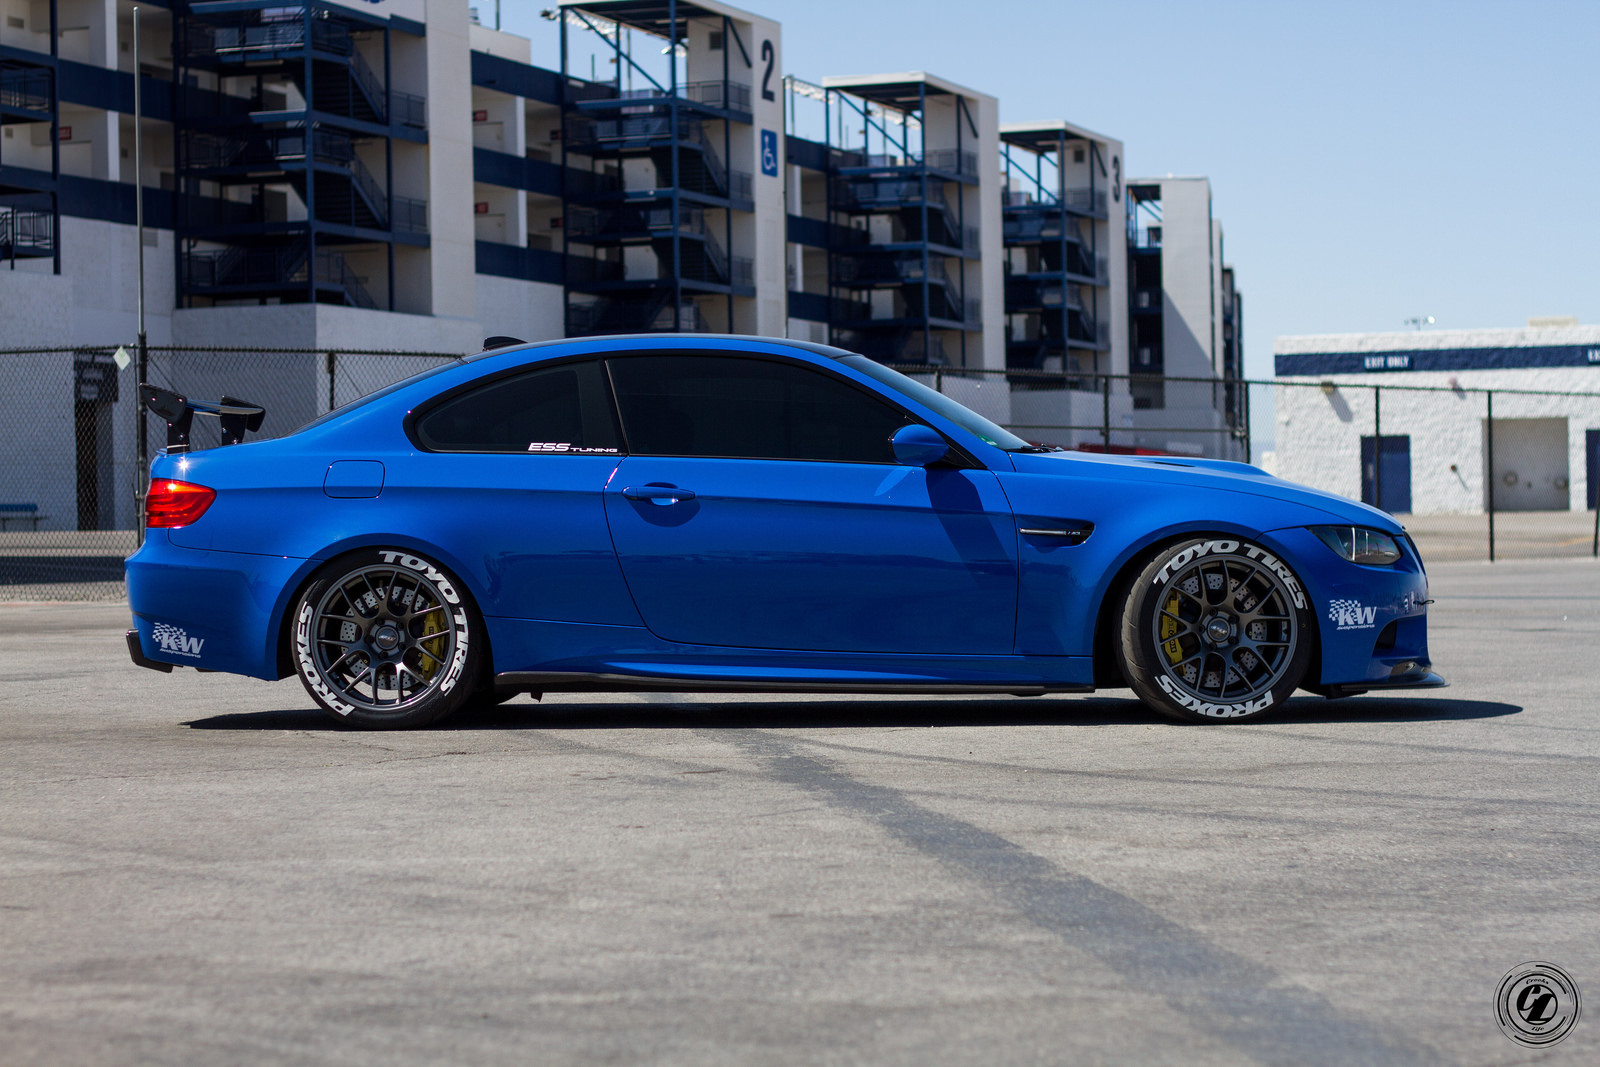 Santorini Blue Bmw E92 M3 Is Here To Take You Down